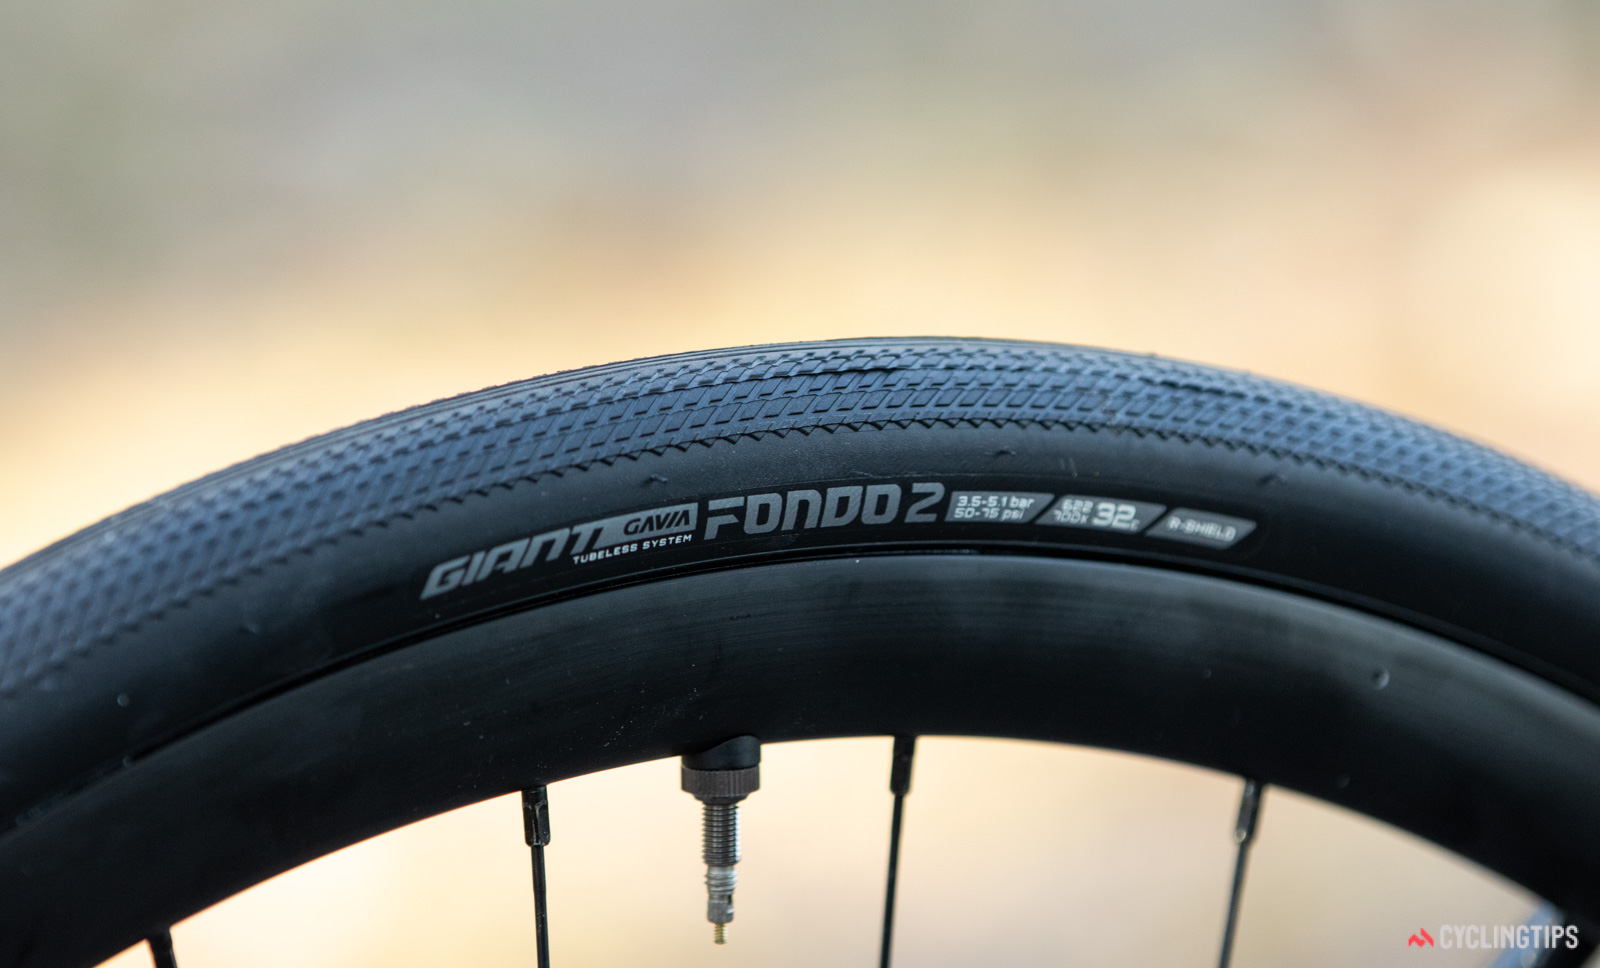 Giant Contend AR 1 2020 tyre clearance